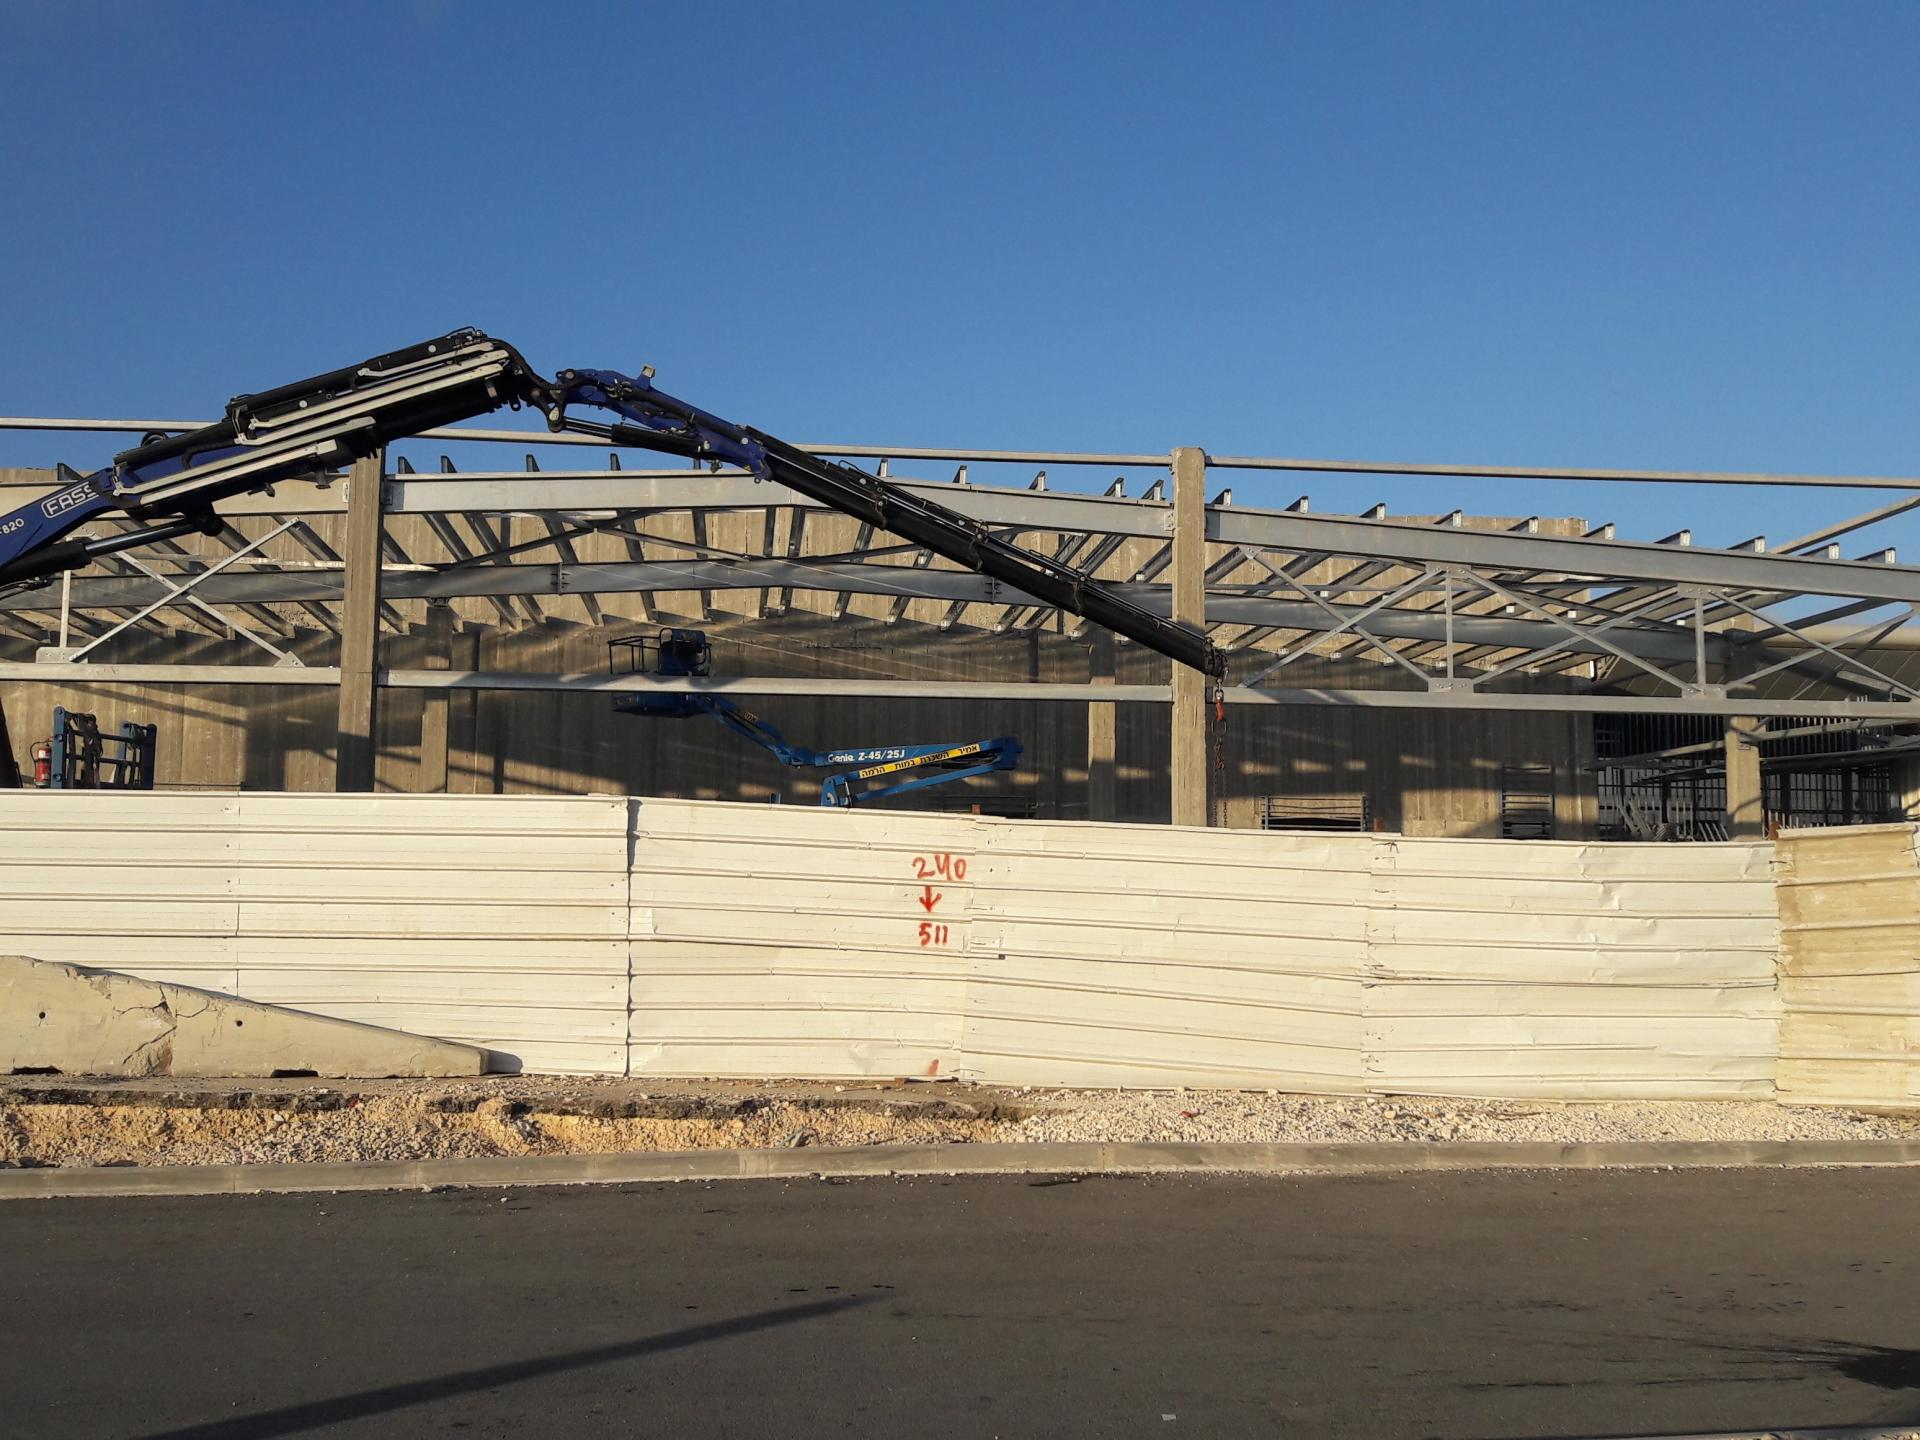 The beginning of a roof in the new building sites – apparently a new shed